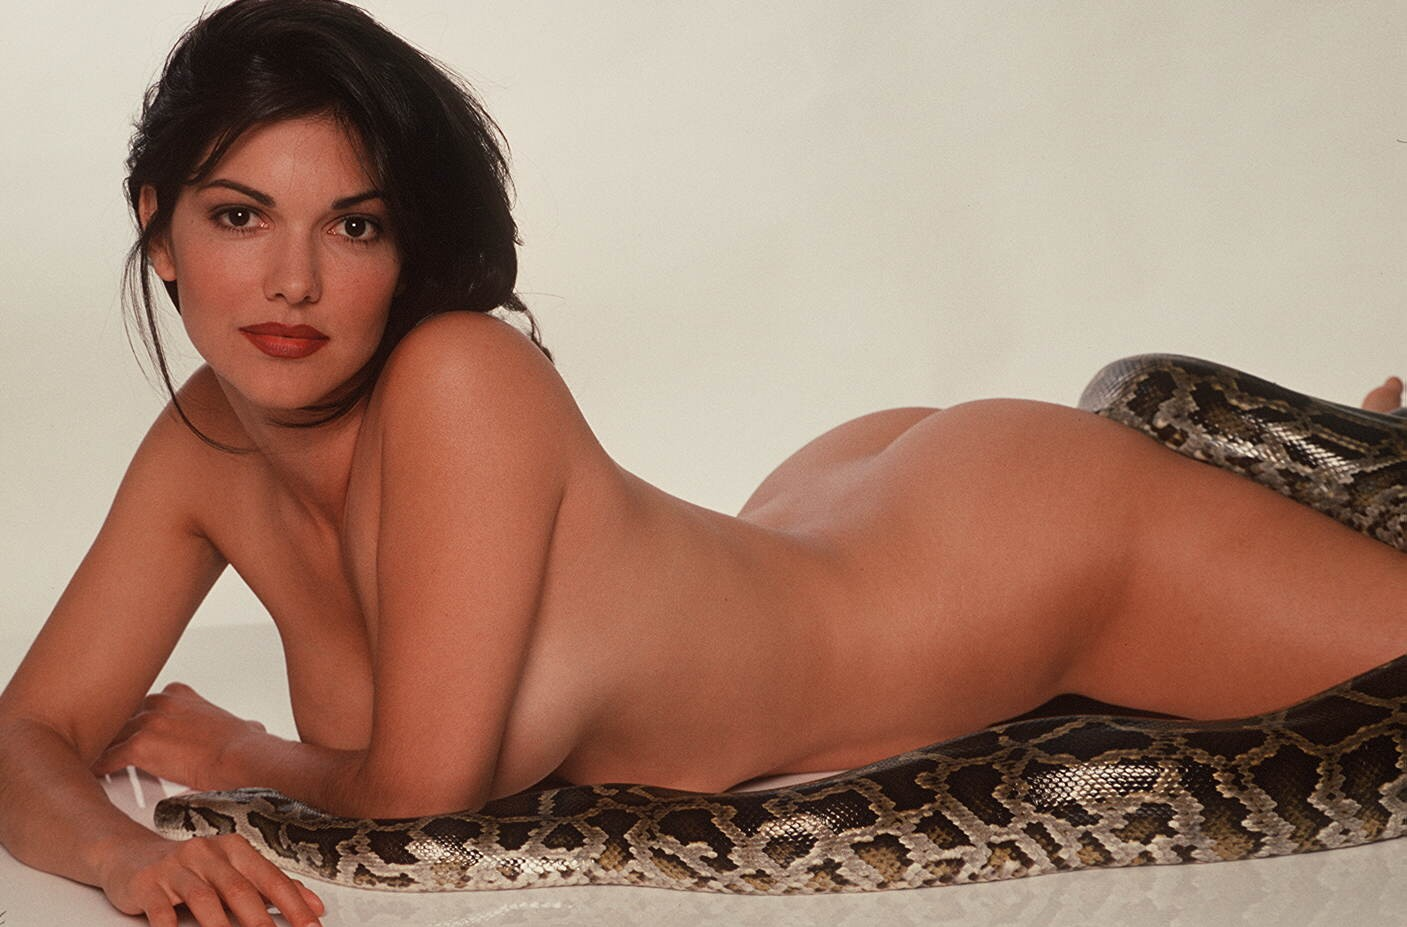 Have hit Laura elena harring pussy valuable phrase